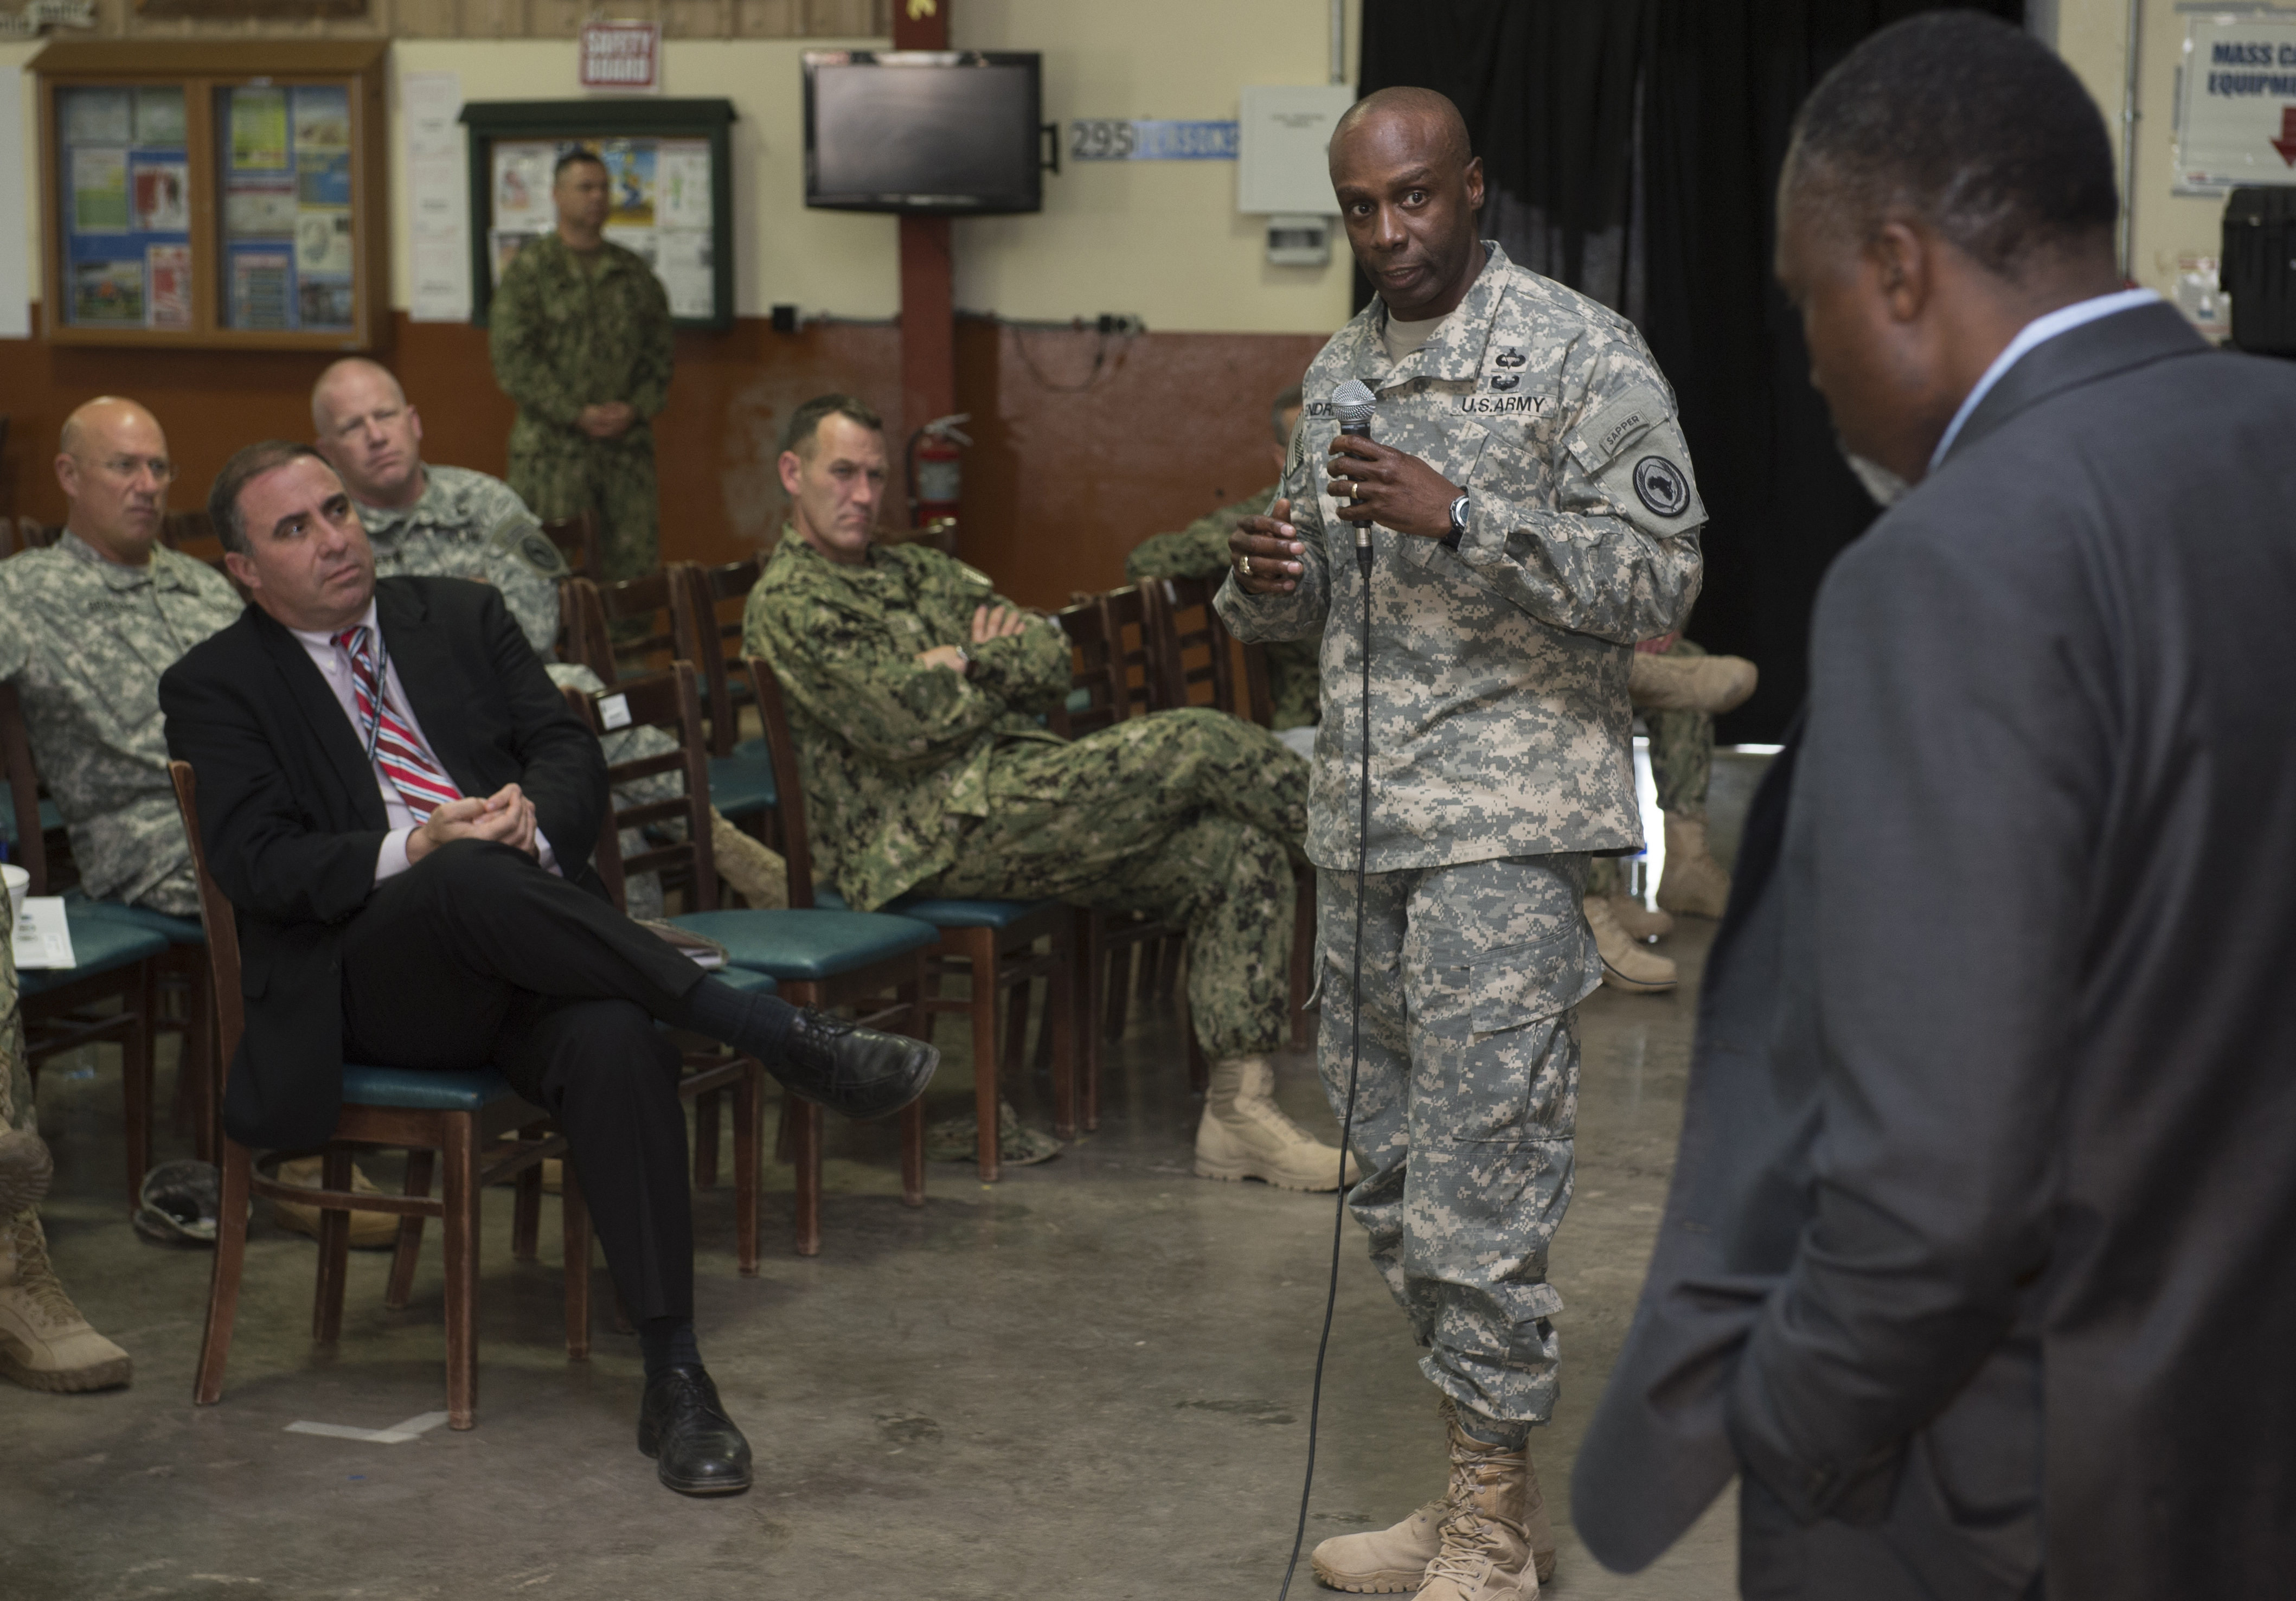 Command Sgt. Maj. Butler Kendrick Jr., Combined Joint Task Force-Horn of Africa senior enlisted leader, discusses a topic with members of the East Africa Security Synchronization Conference Jan. 20, 2016, at Camp Lemonnier, Djibouti. The EASSC is the only conference between U.S. Department of State and U.S. military representatives dedicated to aligning military and political priorities for East Africa. (U.S. Air Force photo by Senior Airman Peter Thompson)